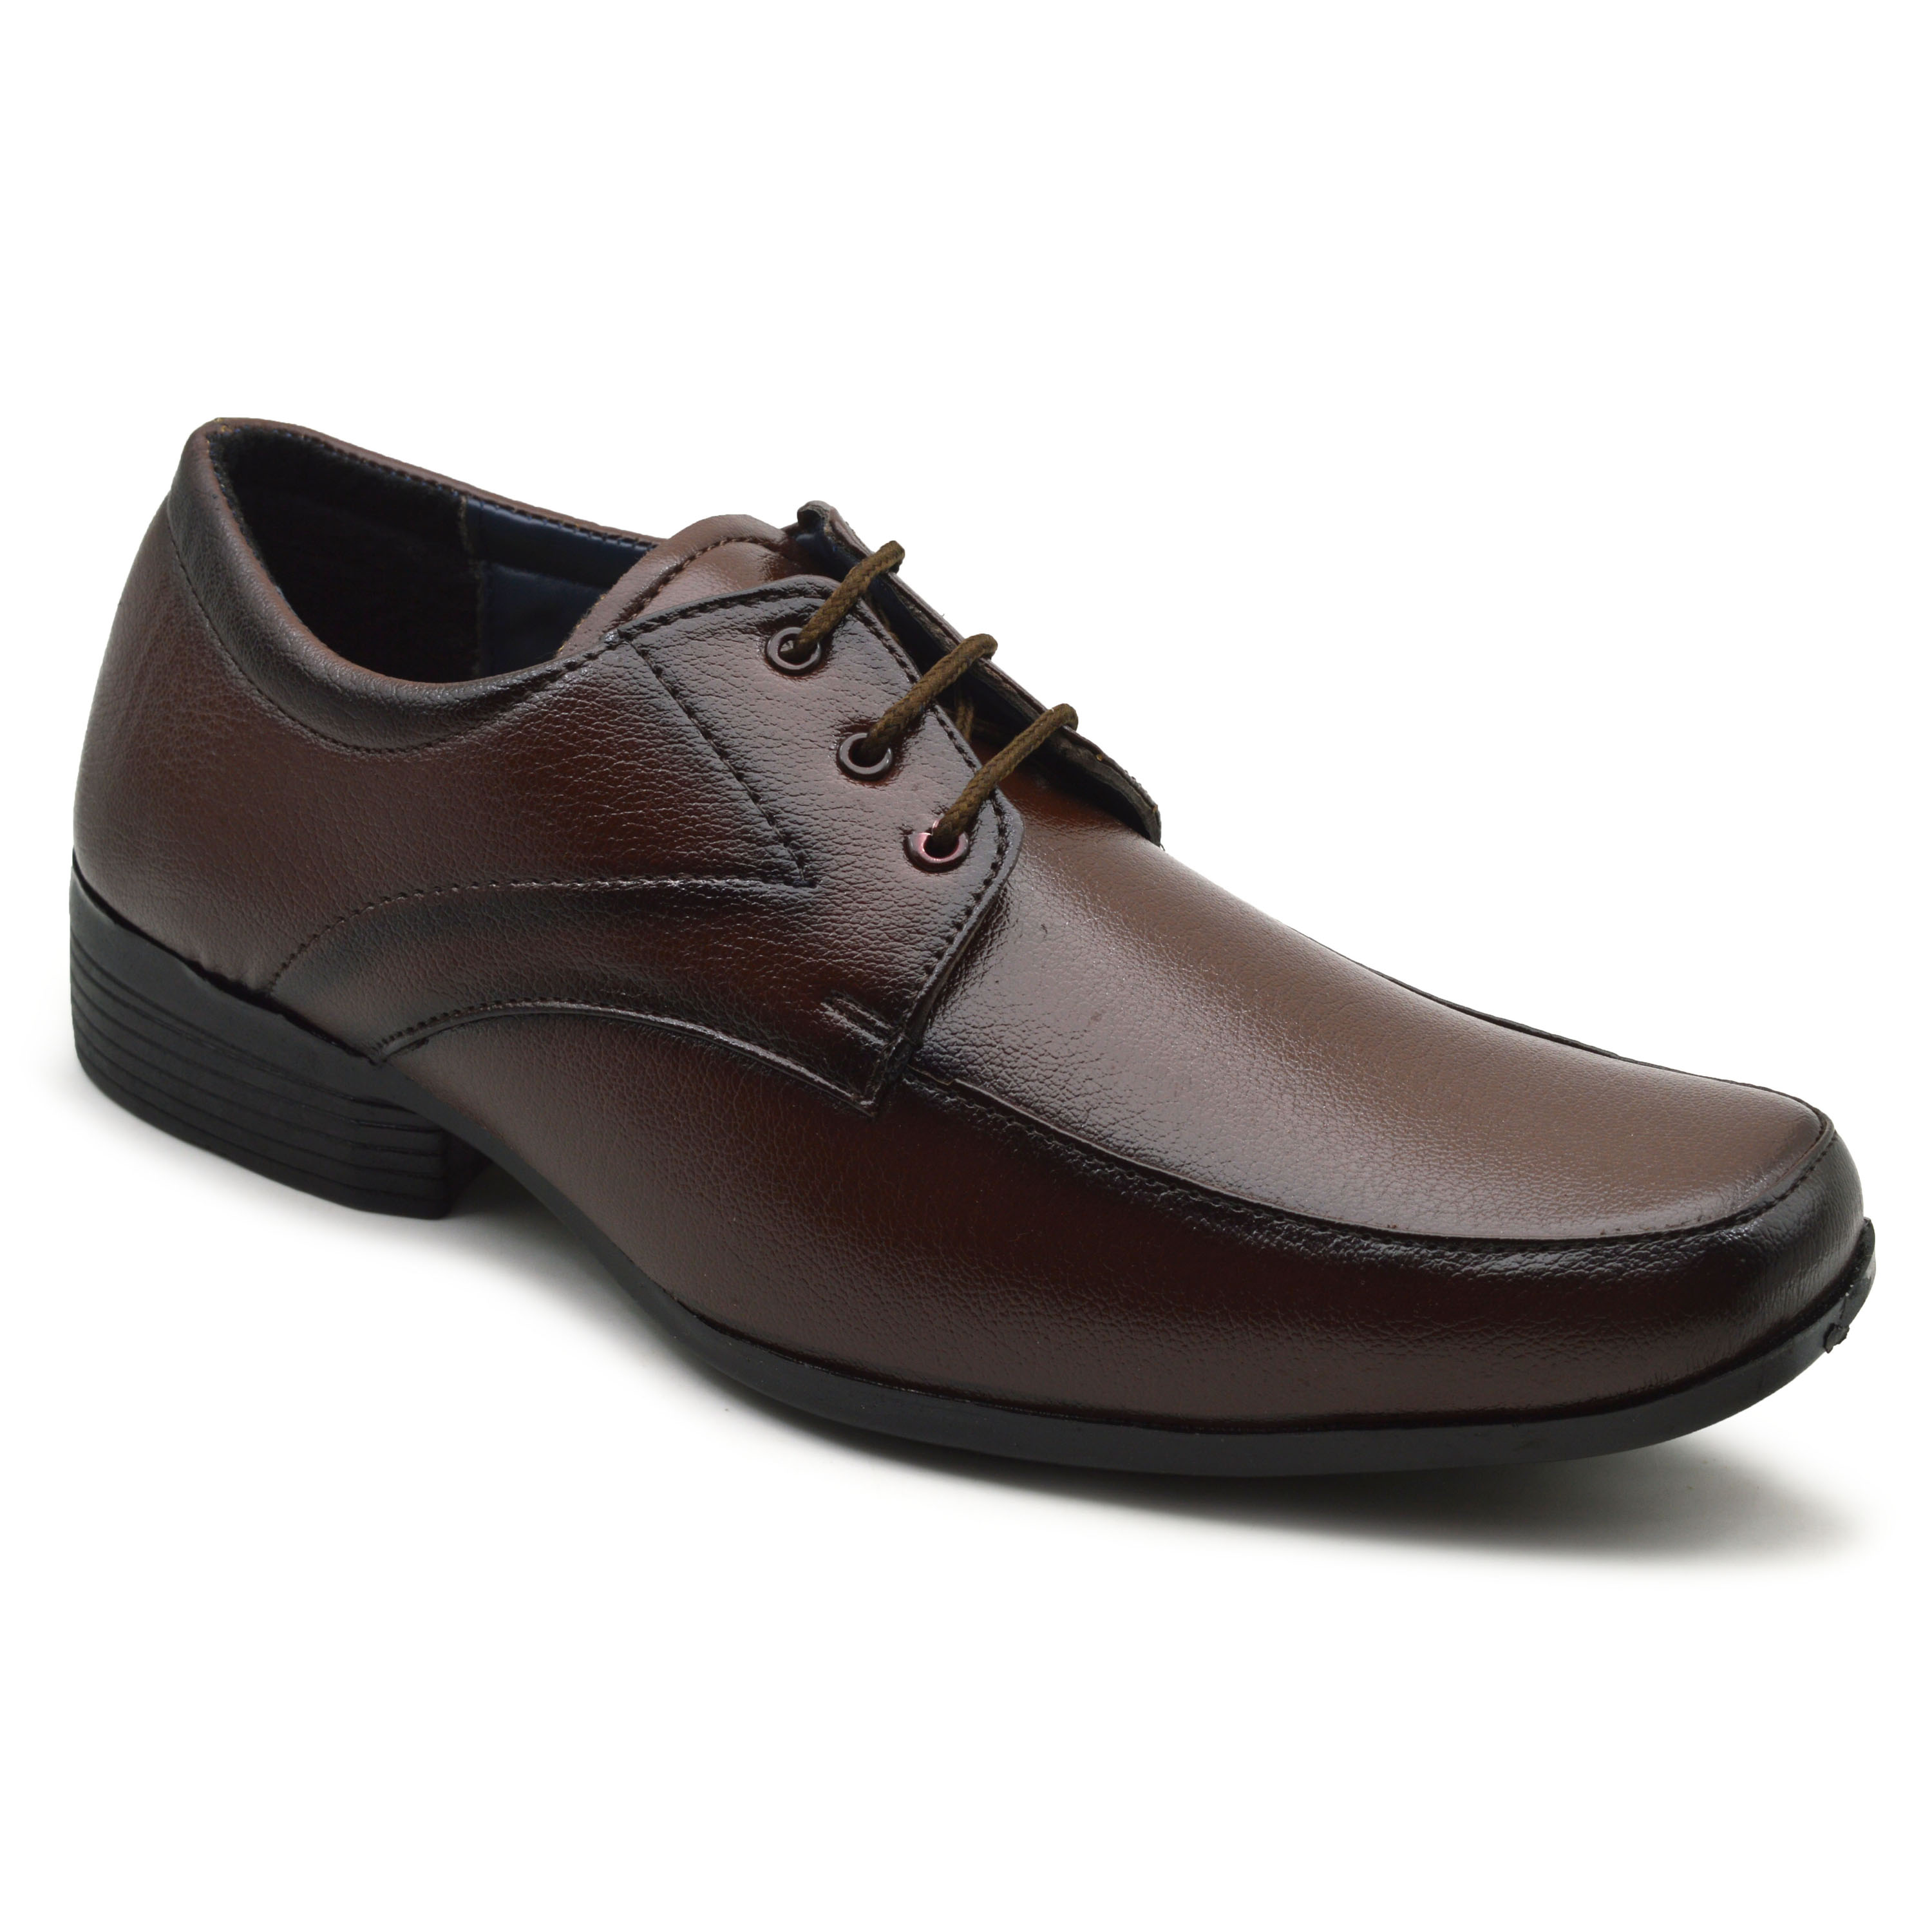 IMC500.786_BR OFFICE STYLE FORMAL SHOE FOR MEN IMC500.786_BR (BROWN, 6TO9, 4 PAIRS)